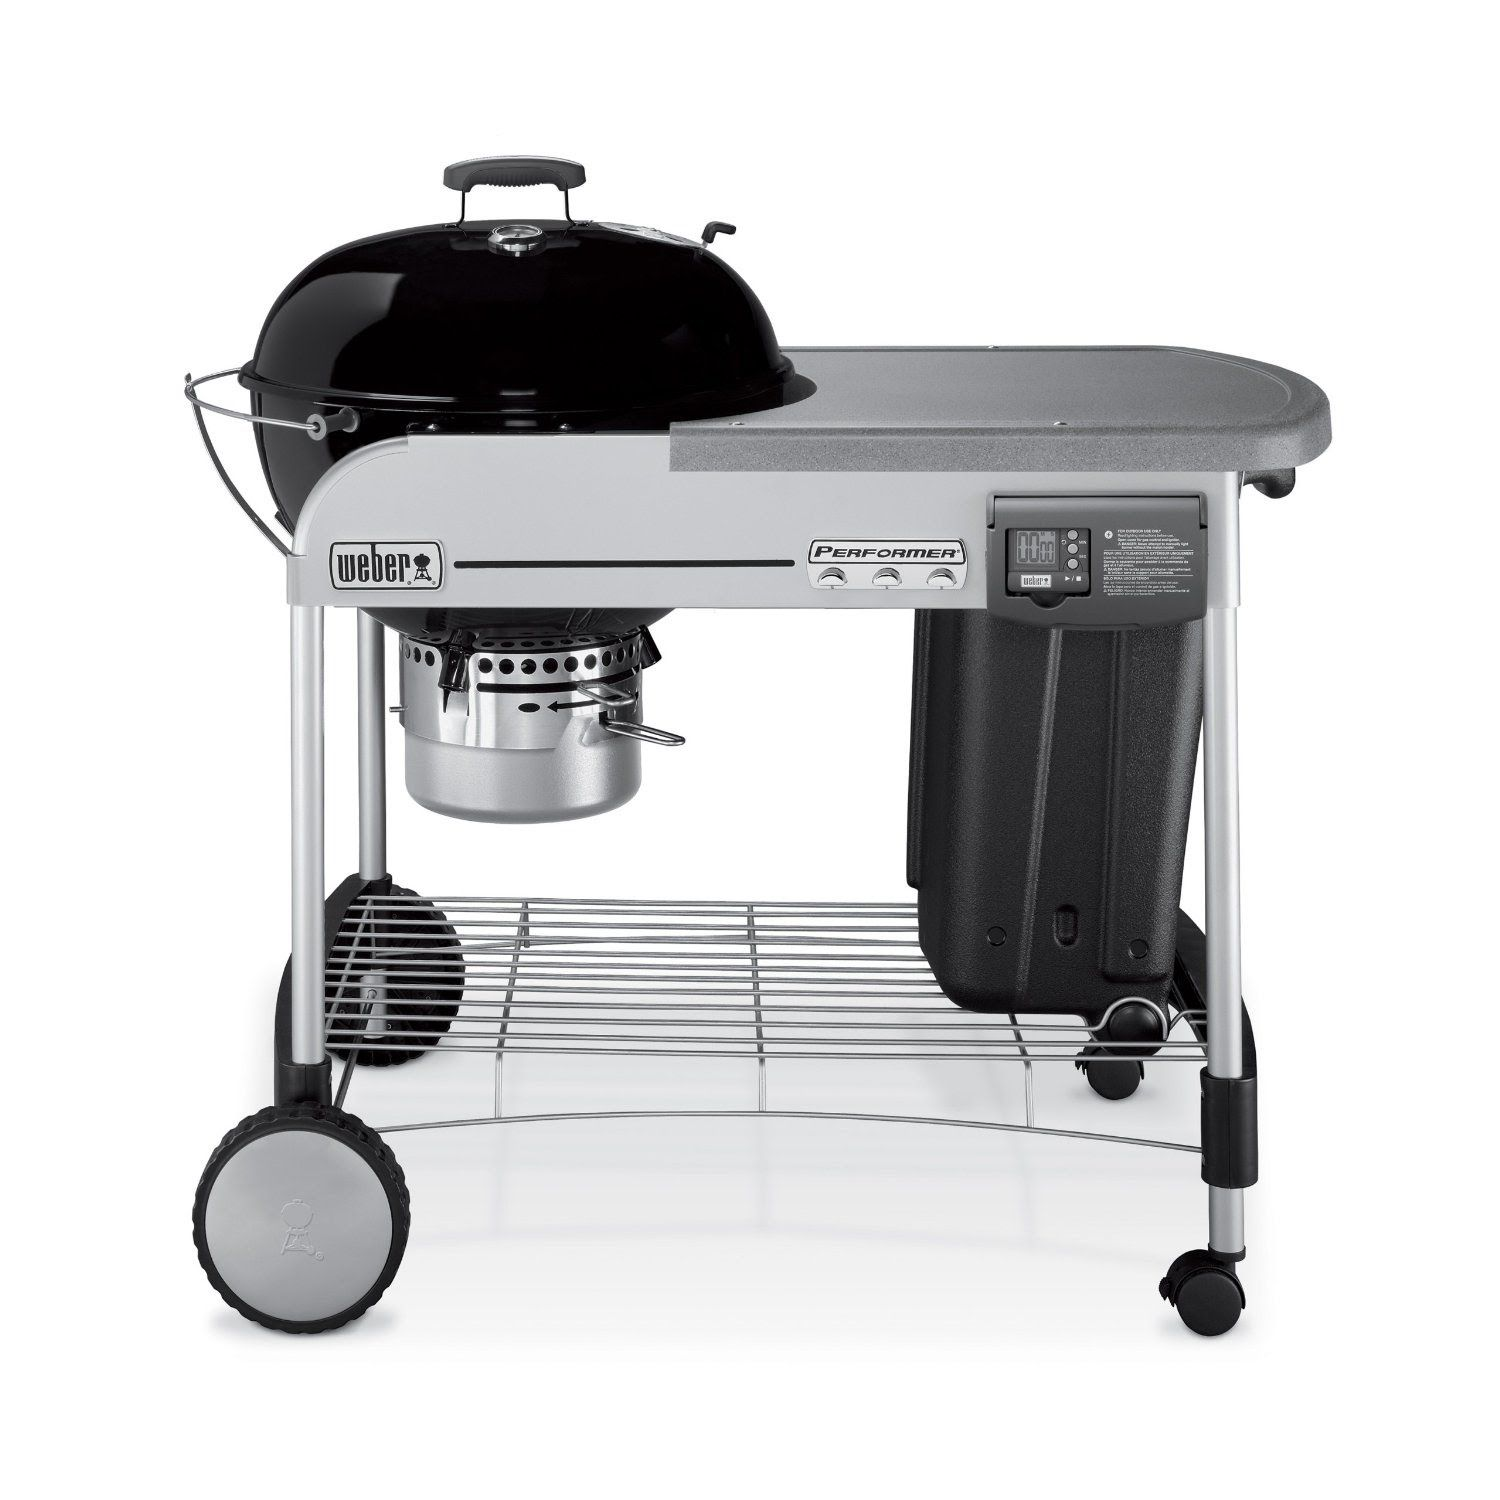 Weber Performer Platinum Charcoal Grill Review Best Charcoal Grill Weber Charcoal Grill Charcoal Grill